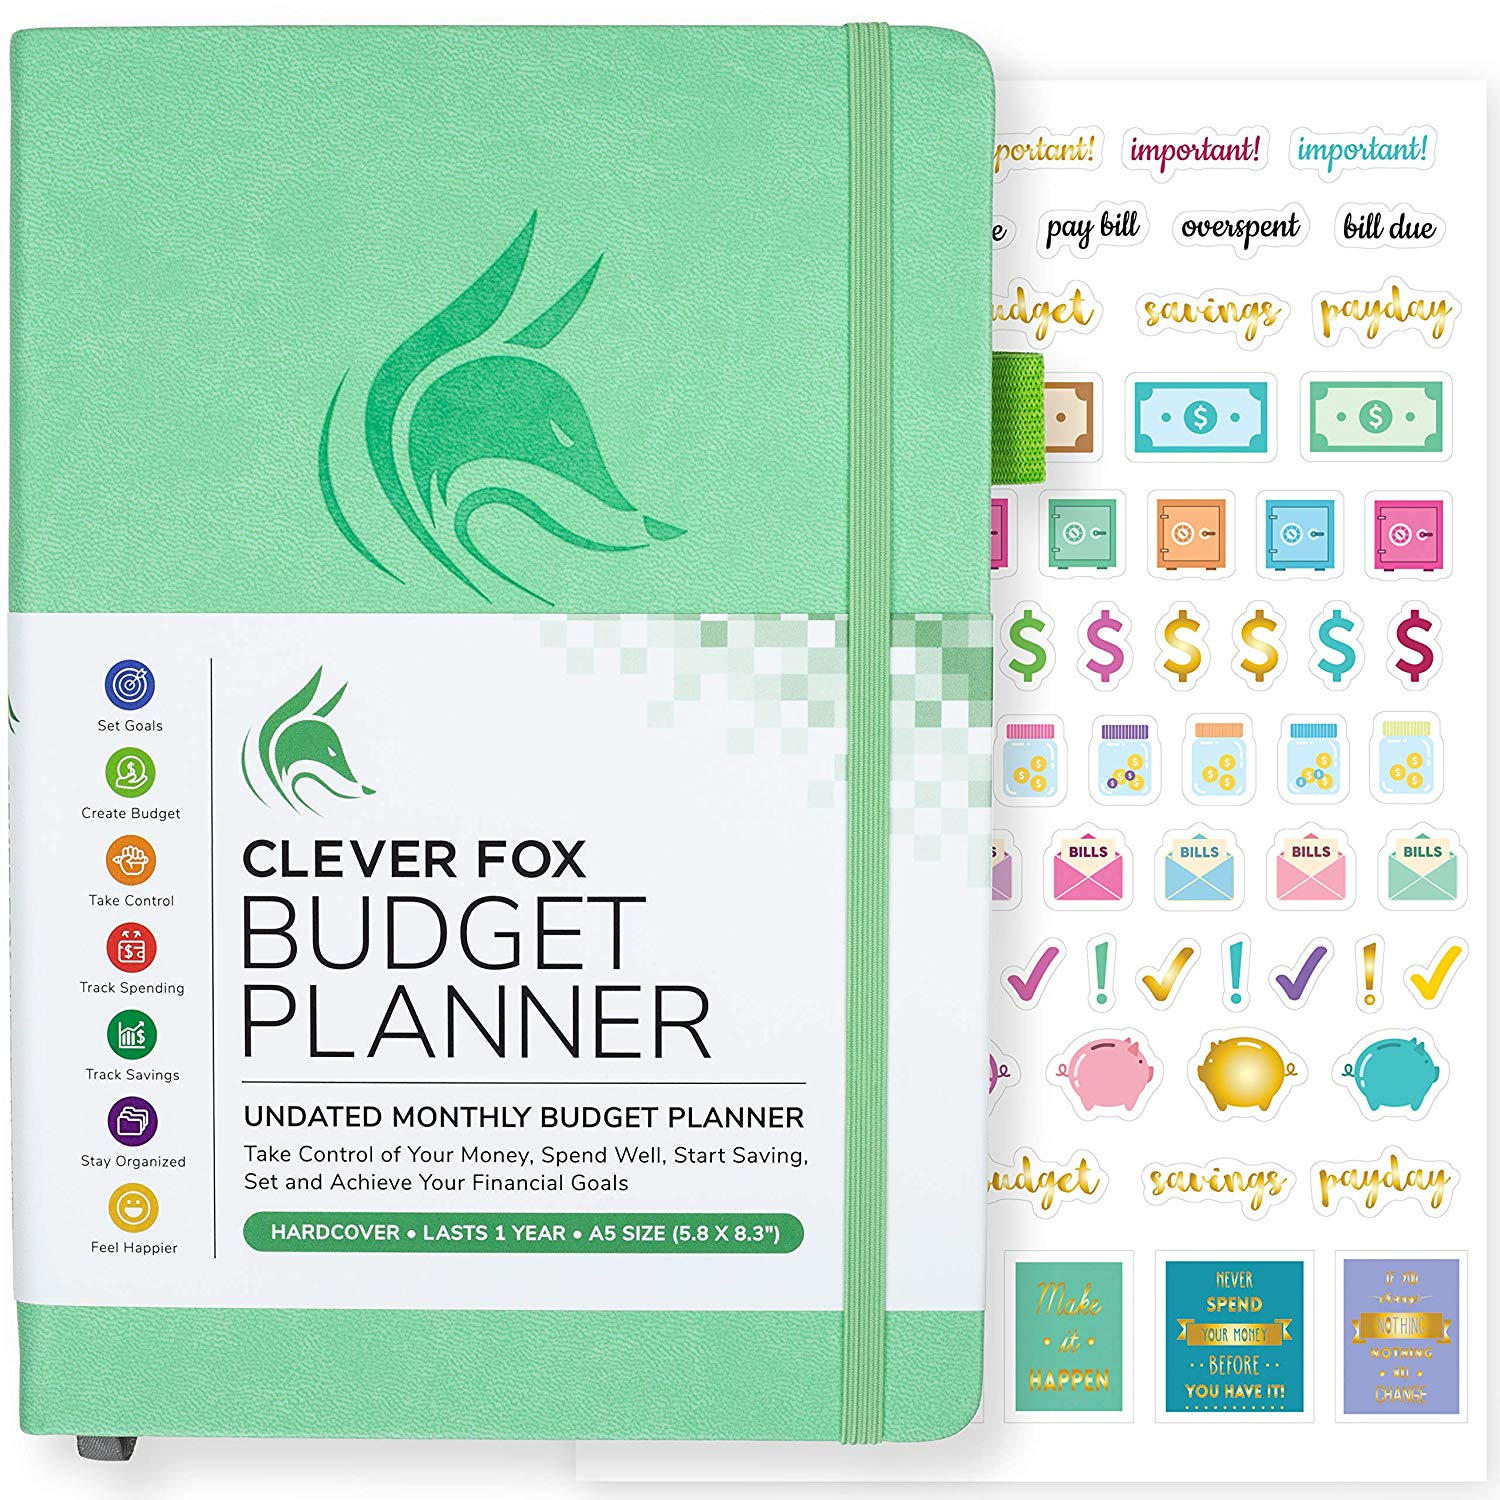 Save money grocery shopping by budgeting for it in your budget planner!